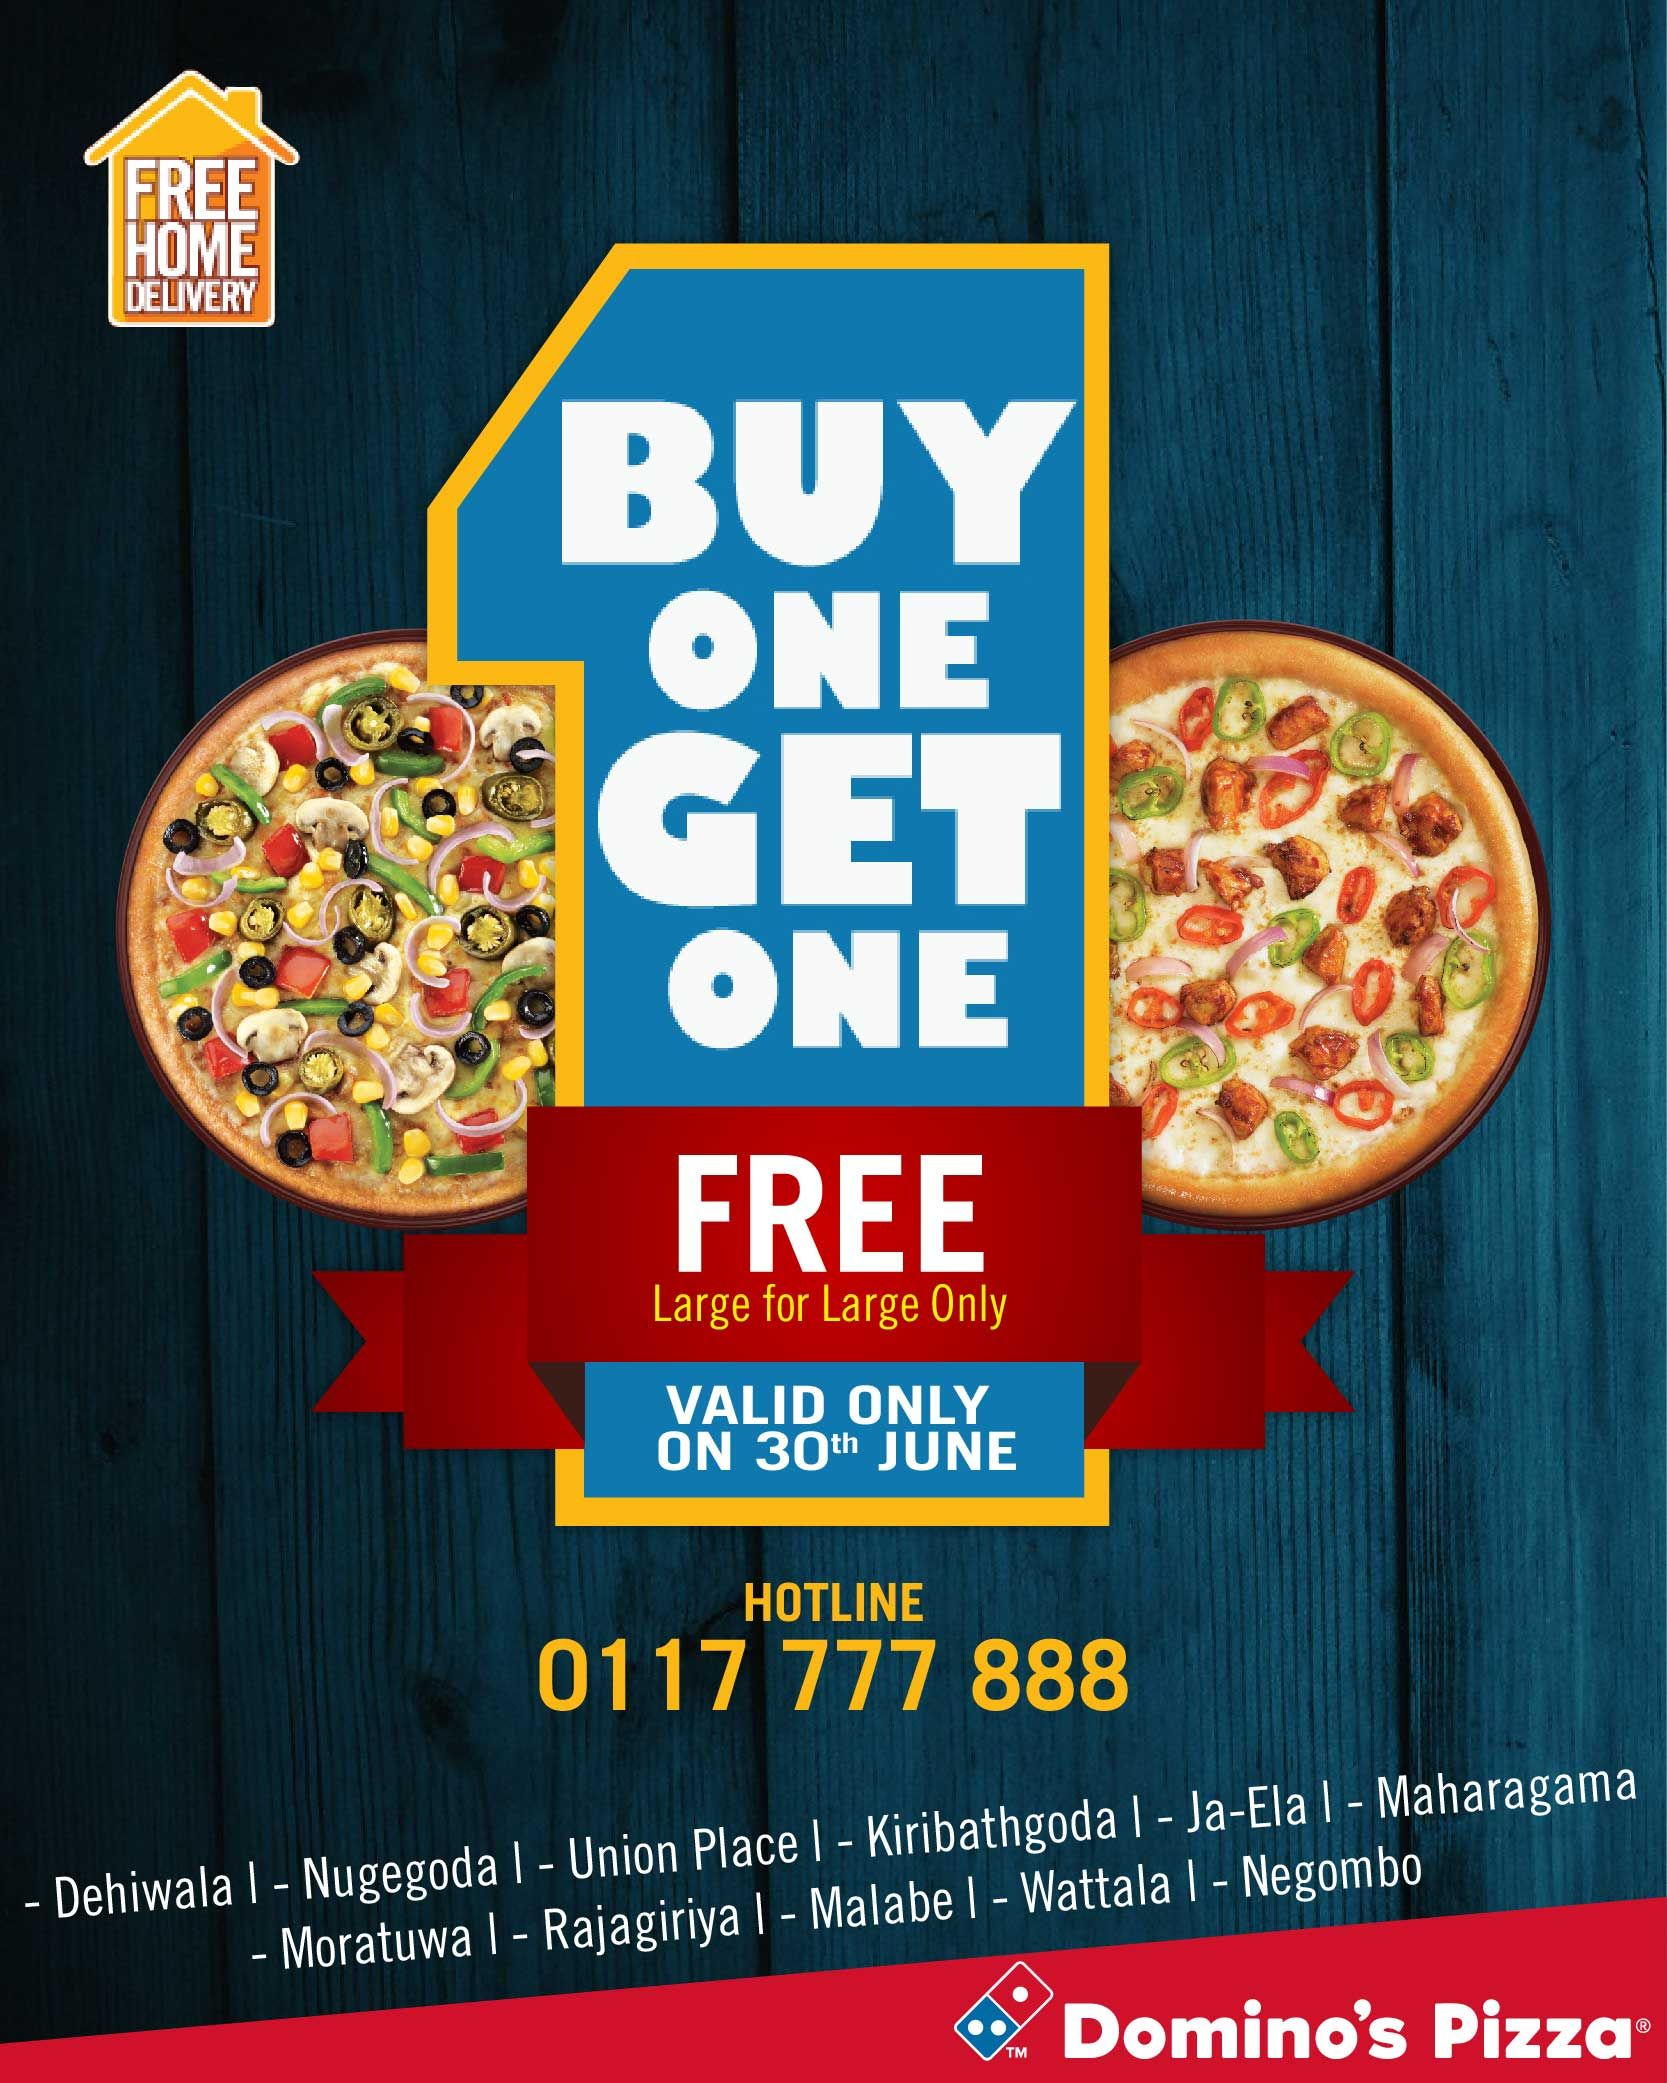 Domino's Pizza buy one get one offer is back   Pizza, Get ...